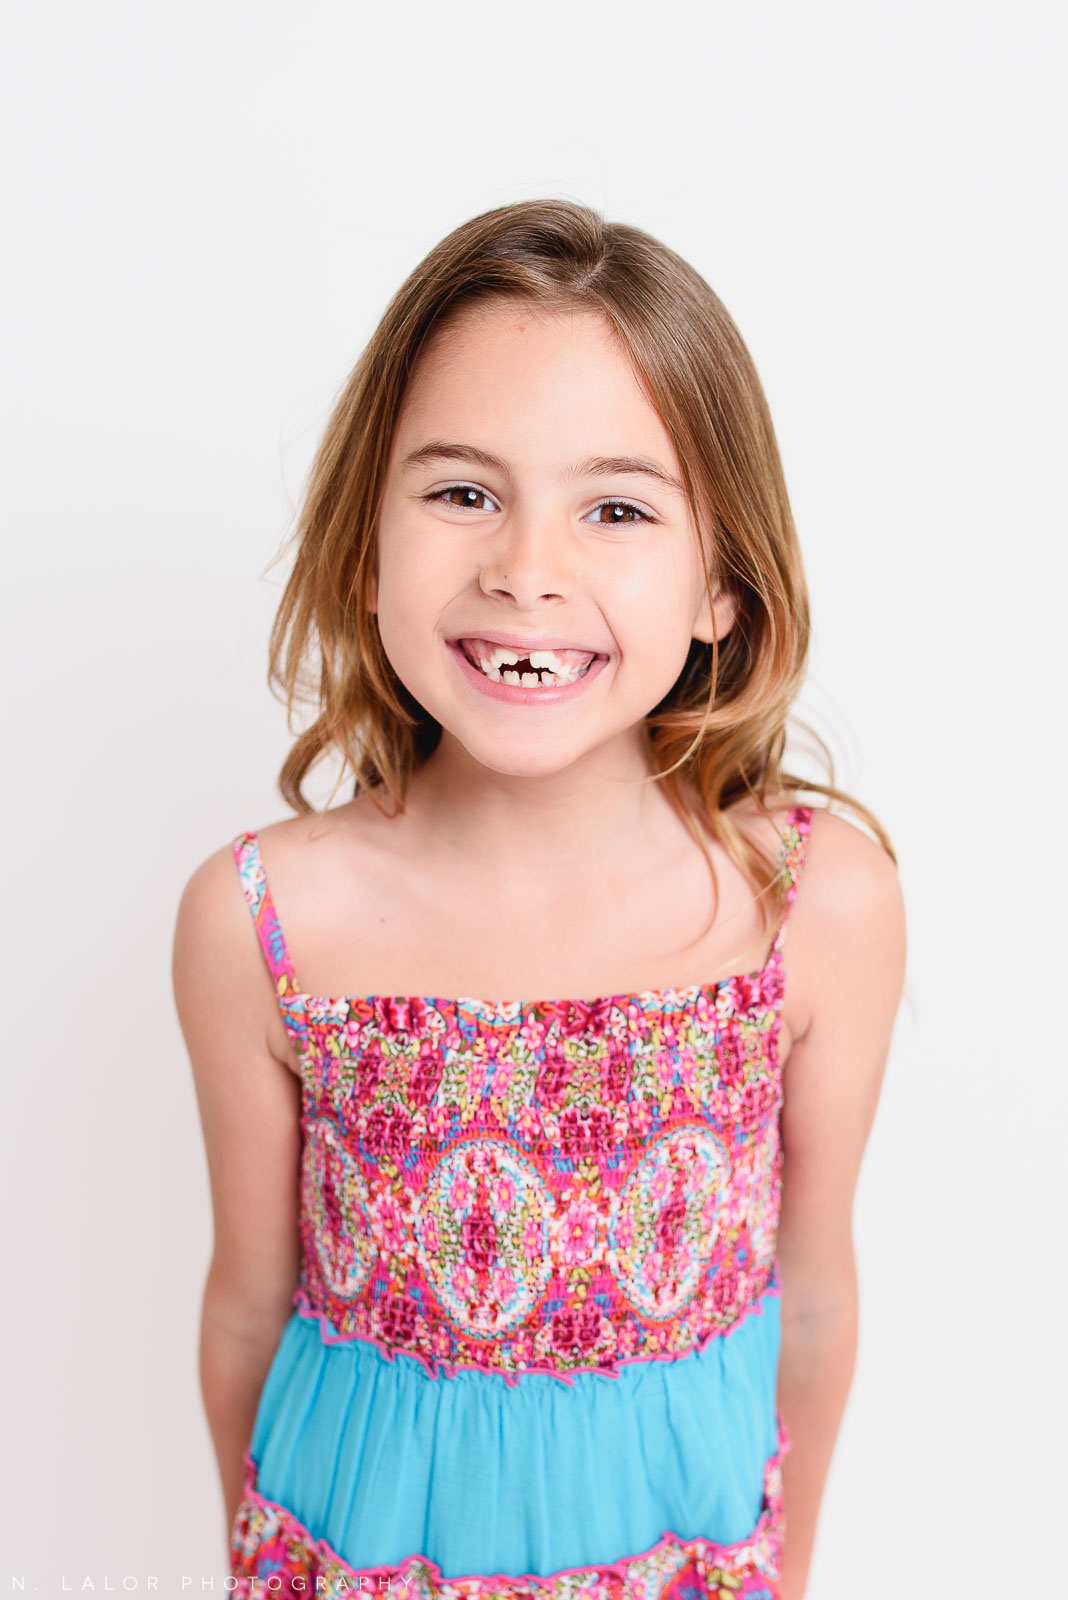 Simple, clean, smiling photo! Editorial studio portrait of 6-year old girl by N. Lalor Photography in Greenwich, Connecticut.